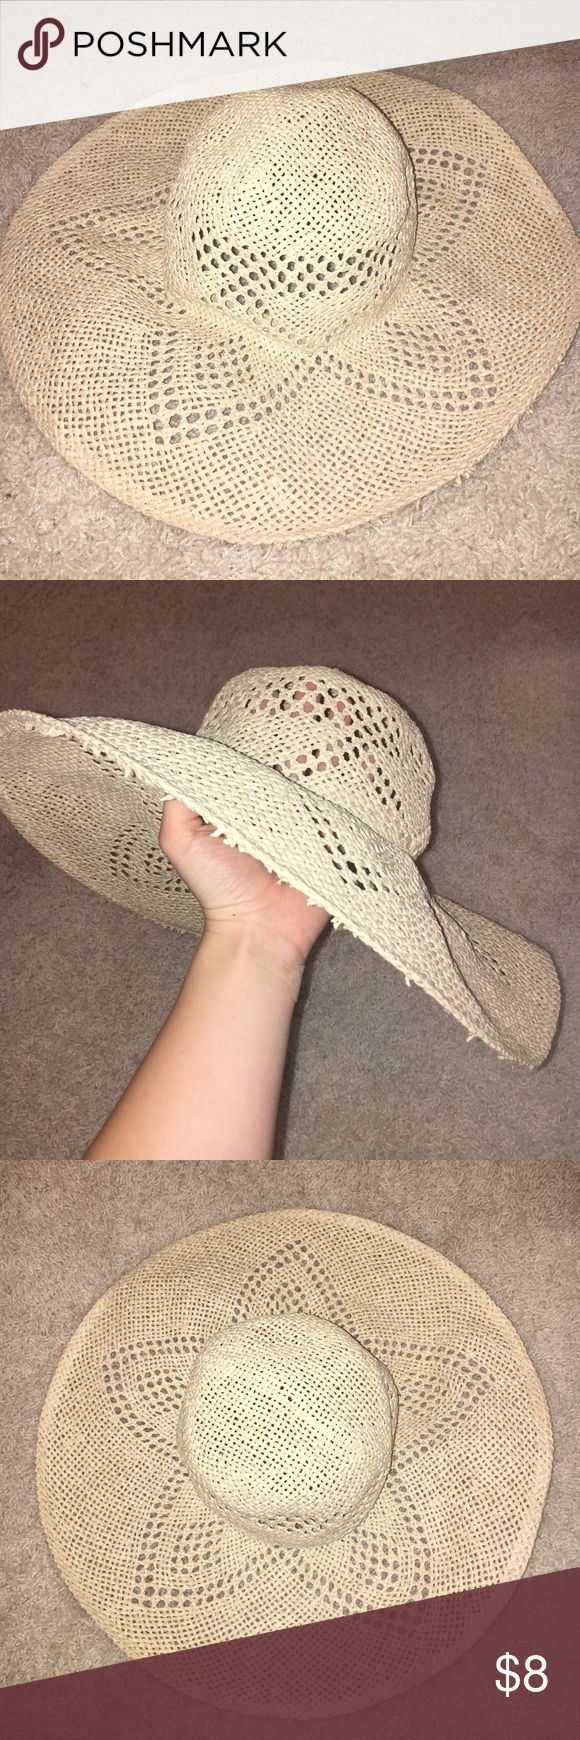 Forever 21 Straw hat Flexible straw hat, cute. Great for summer. Never worn Forever 21 Accessories Hats